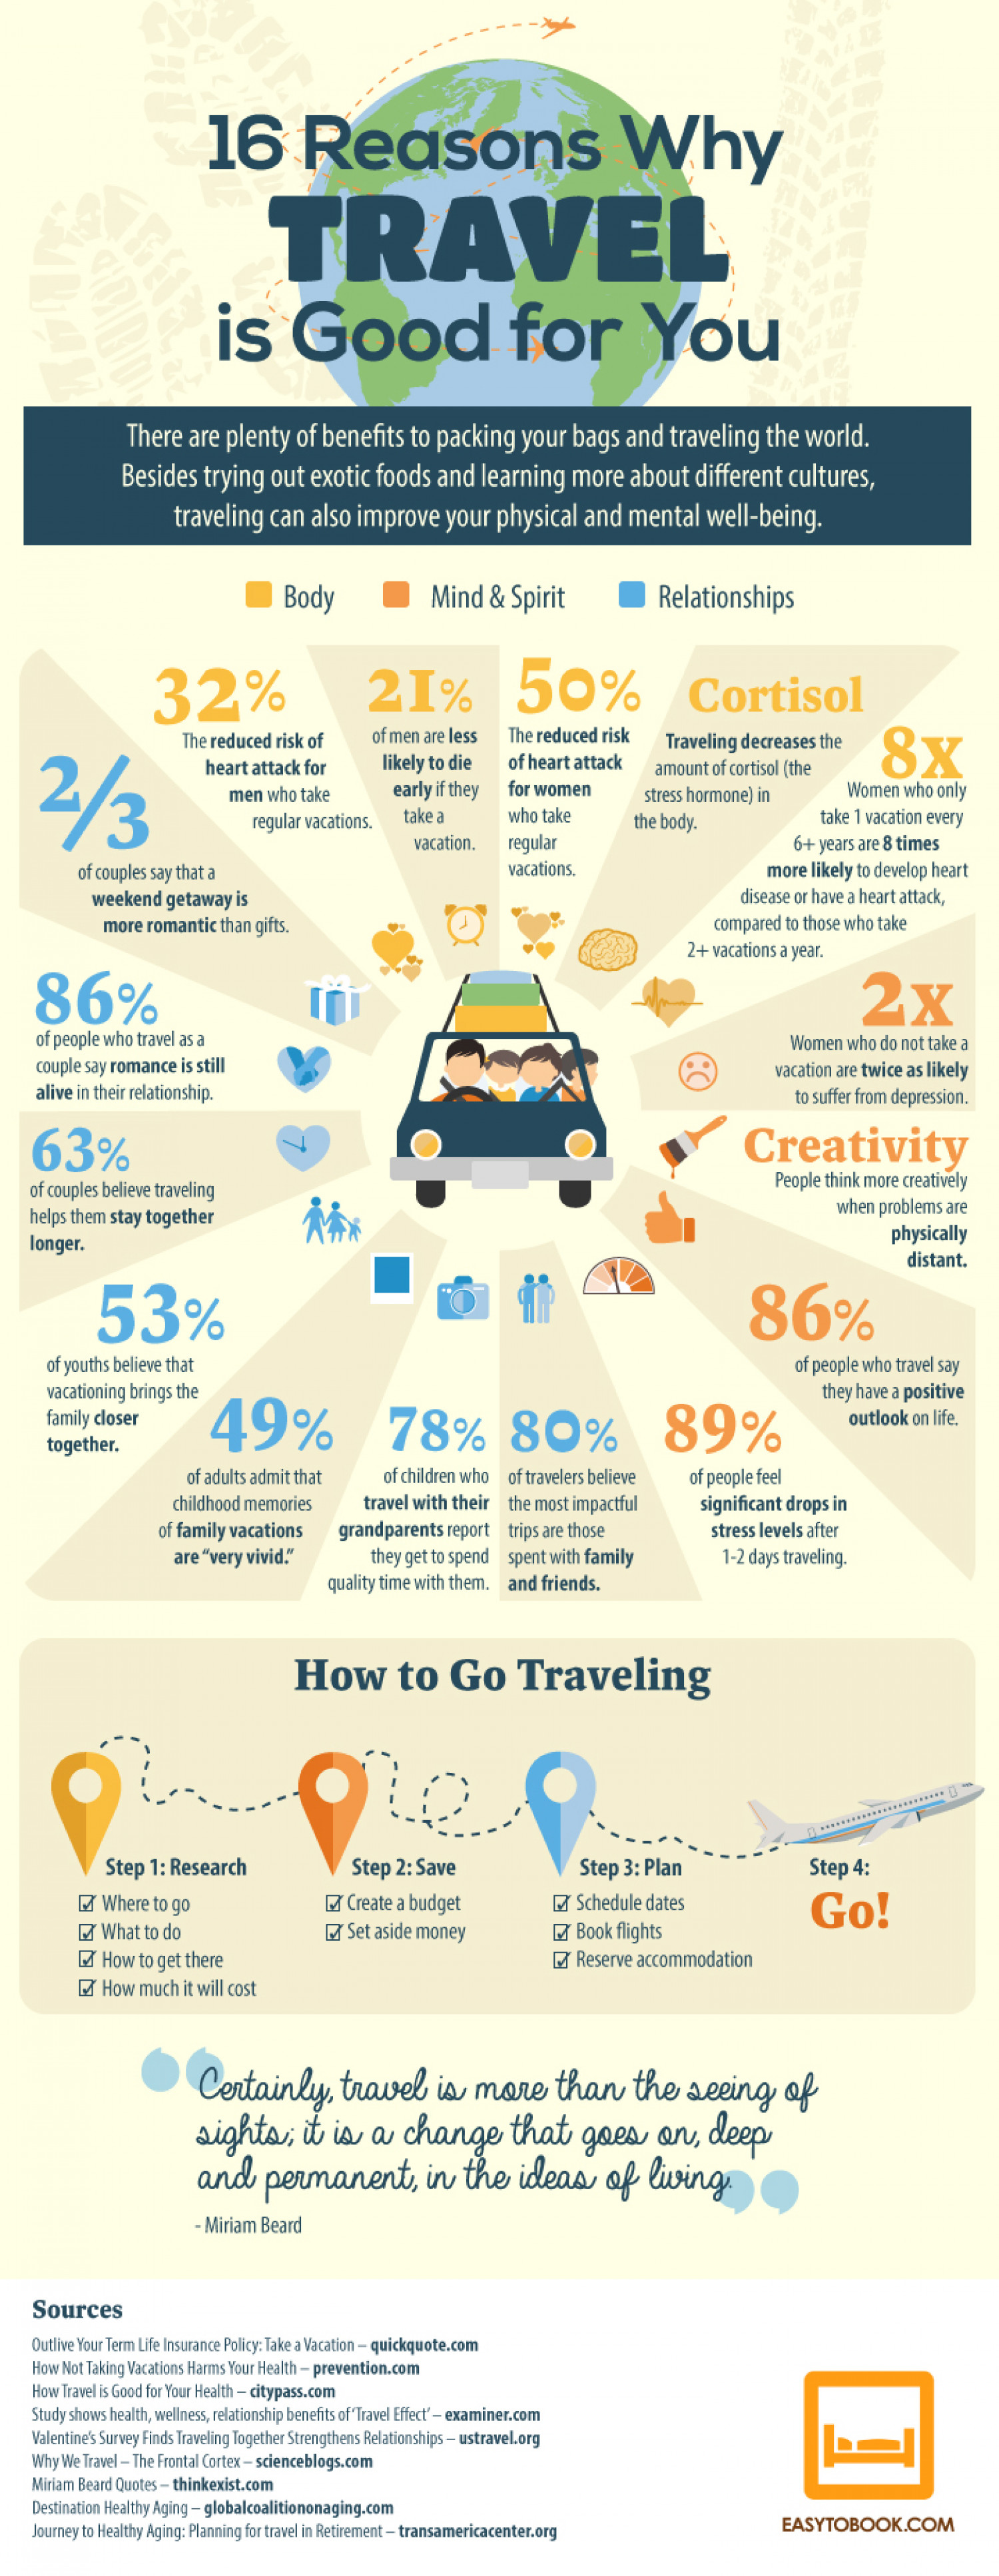 16 Reasons Why Travel is Good For You Infographic